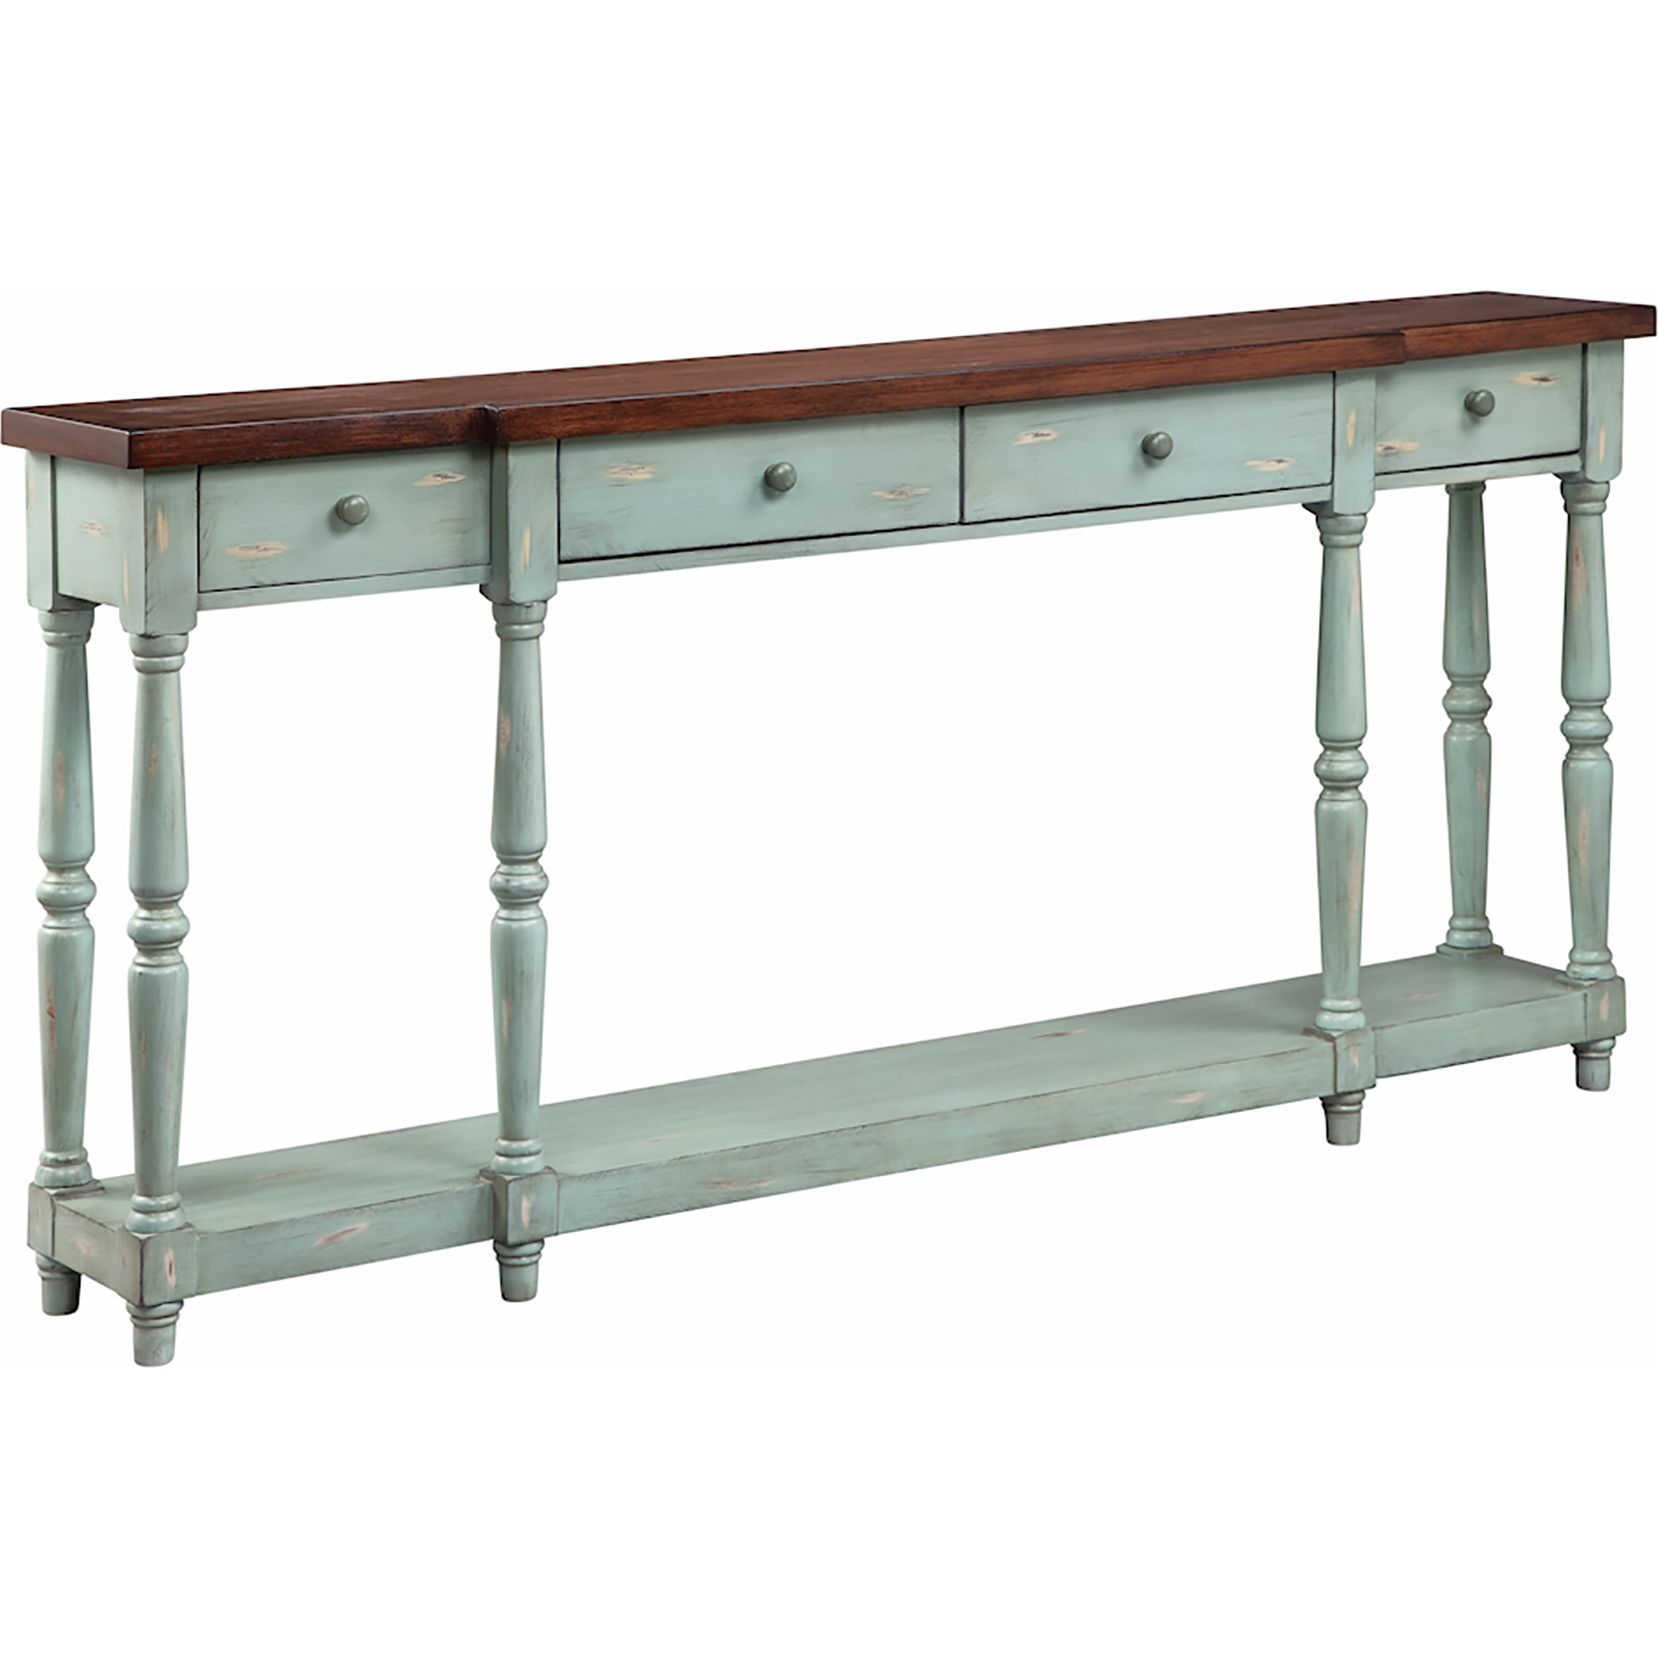 Stein world simpson console table in hand painted blue